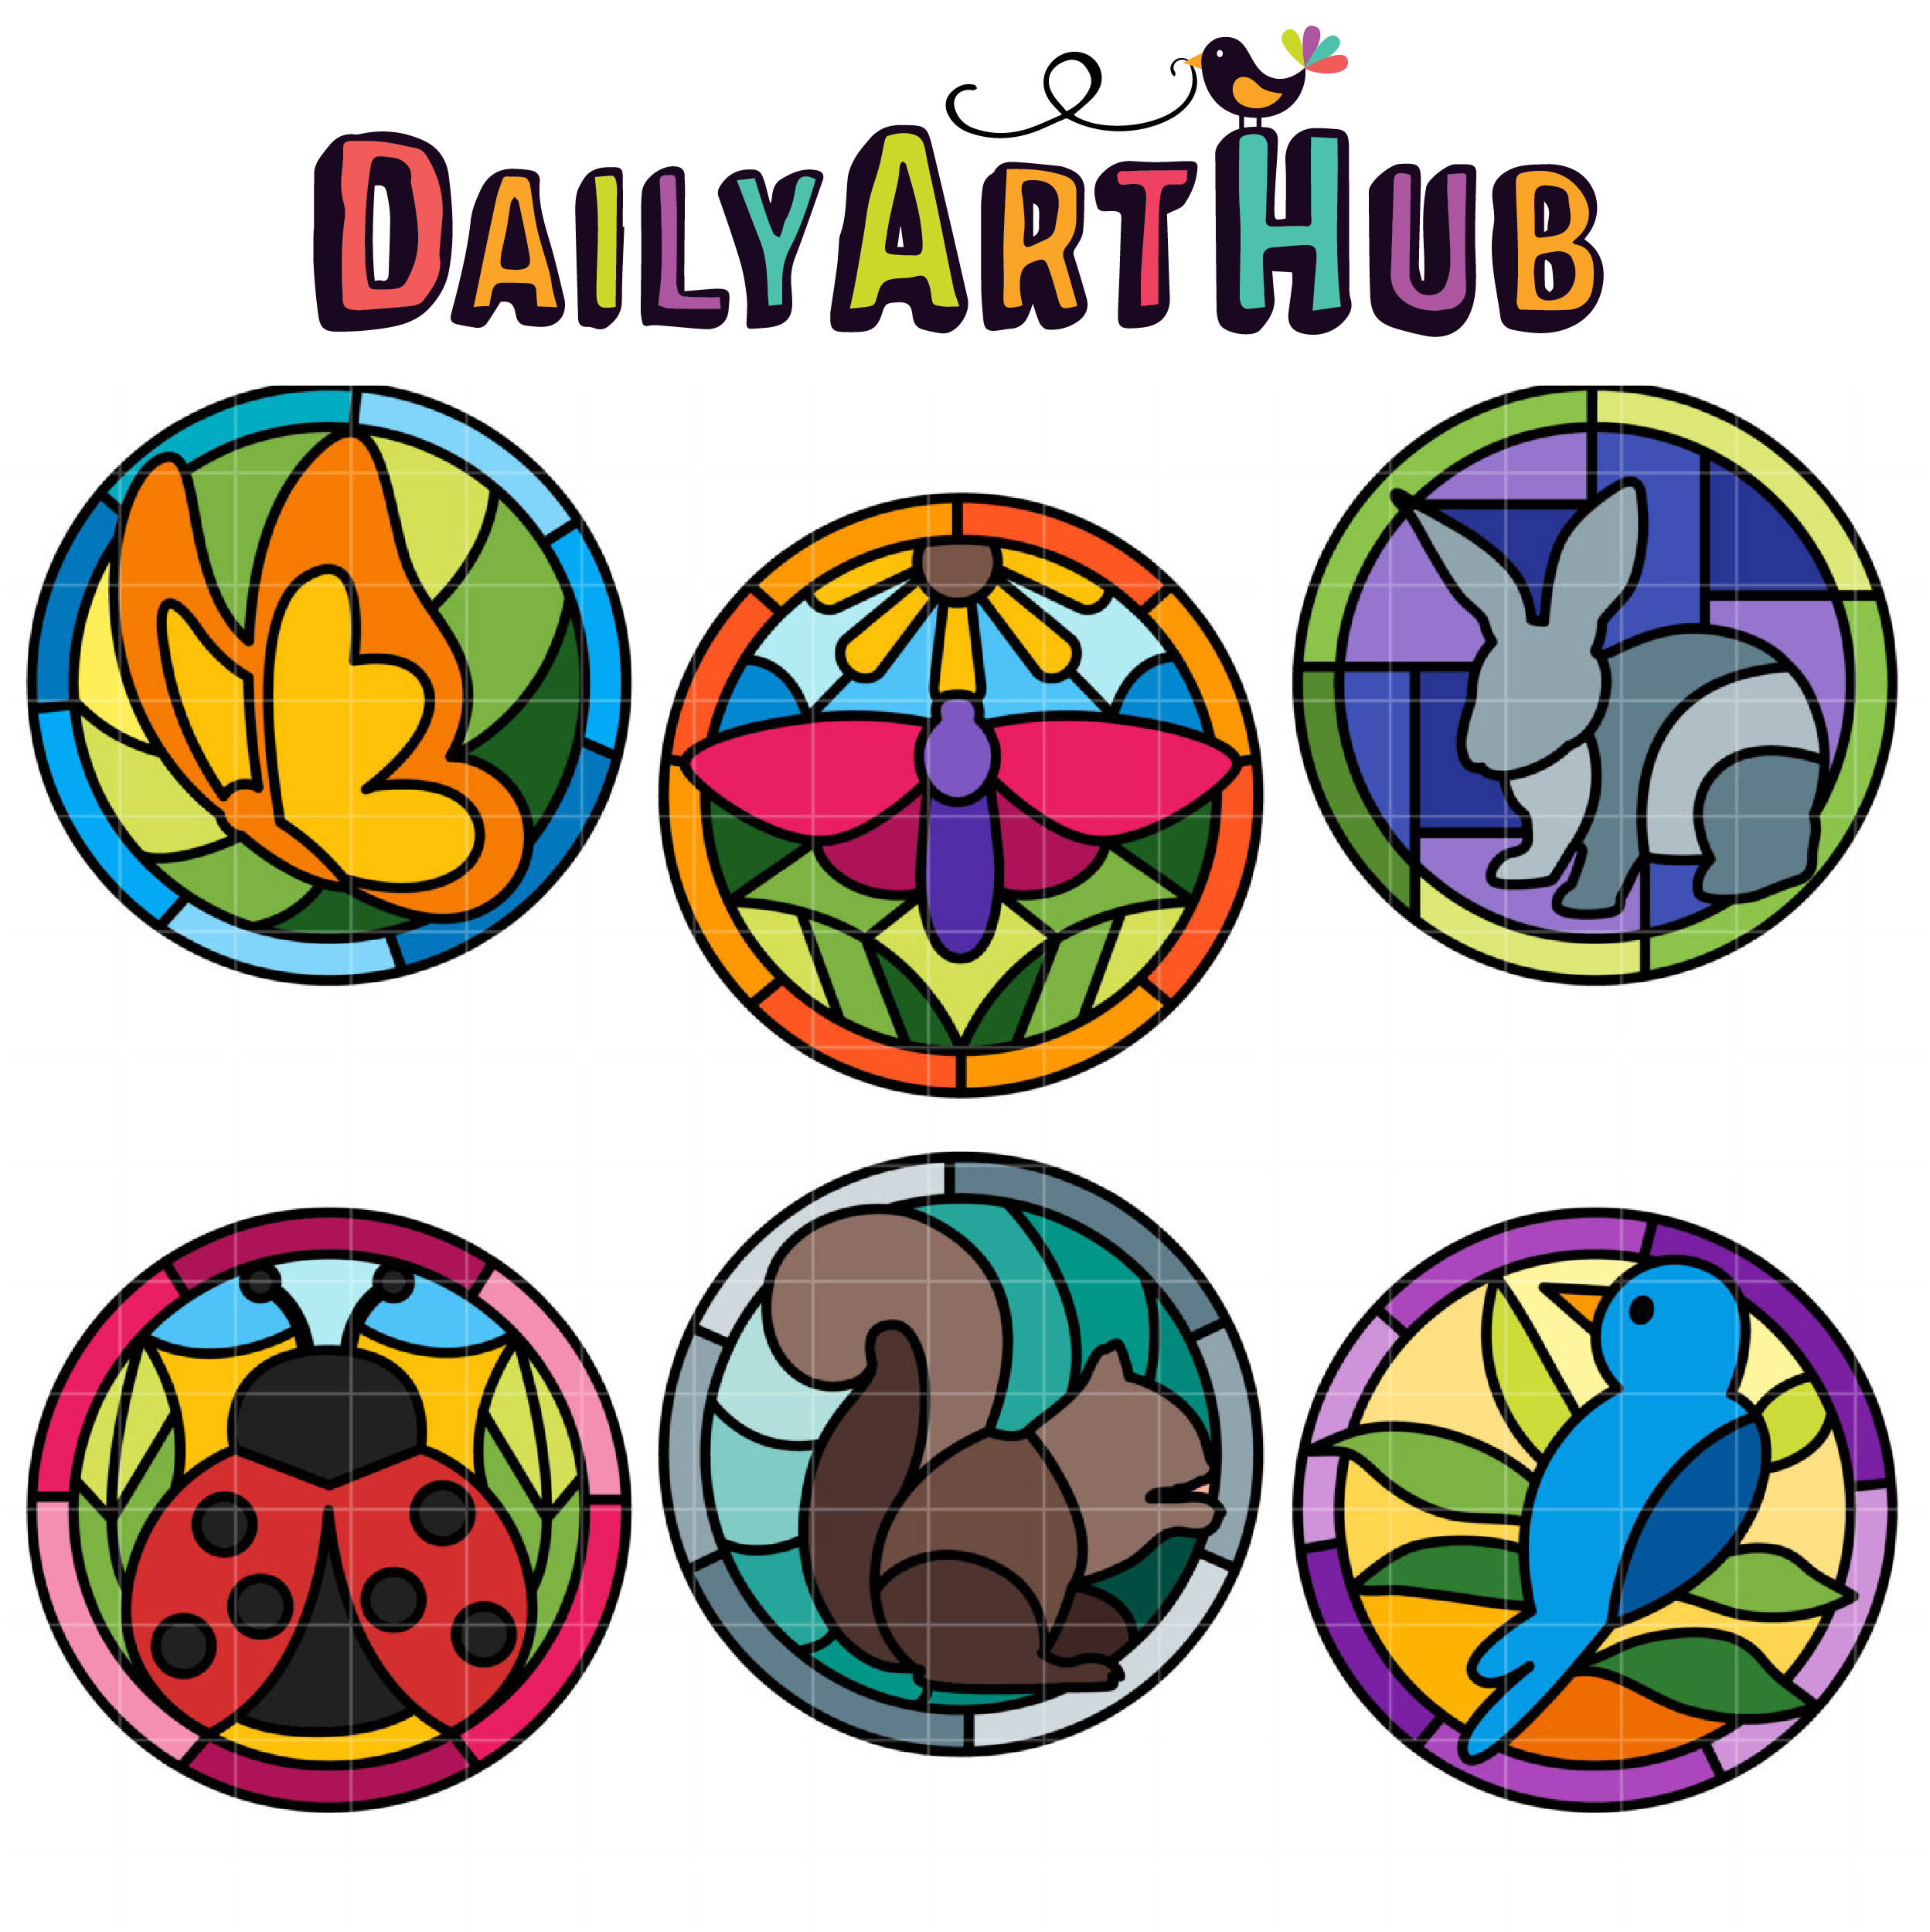 2497x2499 Stained Glass Creatures Clip Art Set Daily Art Hub Free Clip